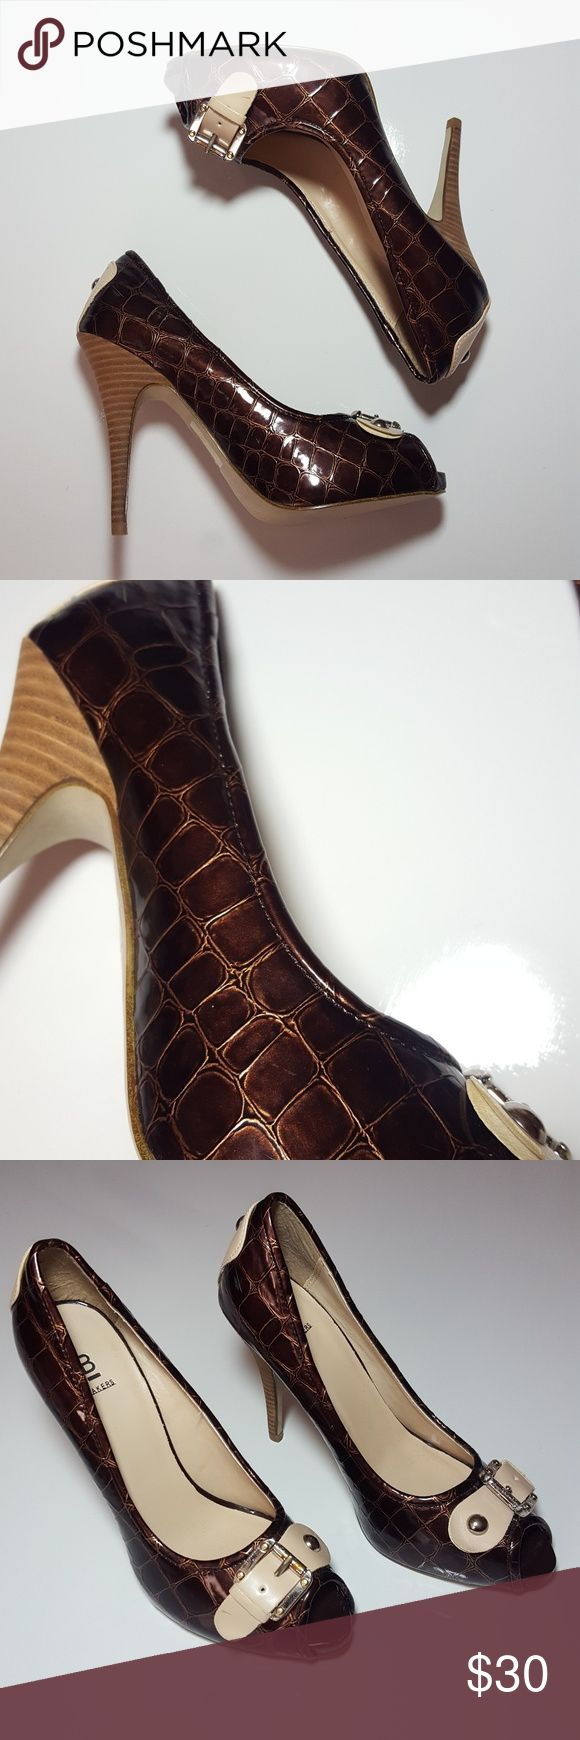 ♀ BAKERS womens 7 1/2 faux croc print pumps Pre-owned and hardly worn.  There are a few marks on the shoes as seen in the pictures.  These open-toe high heels feature beautiful hues of brown and copper.  Check out my other Burberry, Zara, Nike, Under Armour, J Crew, Vince Camuto, TOPSHOP, Coach, Michael Kors, Forever 21, Kate Spade, and Lacoste items. Bakers Shoes Heels